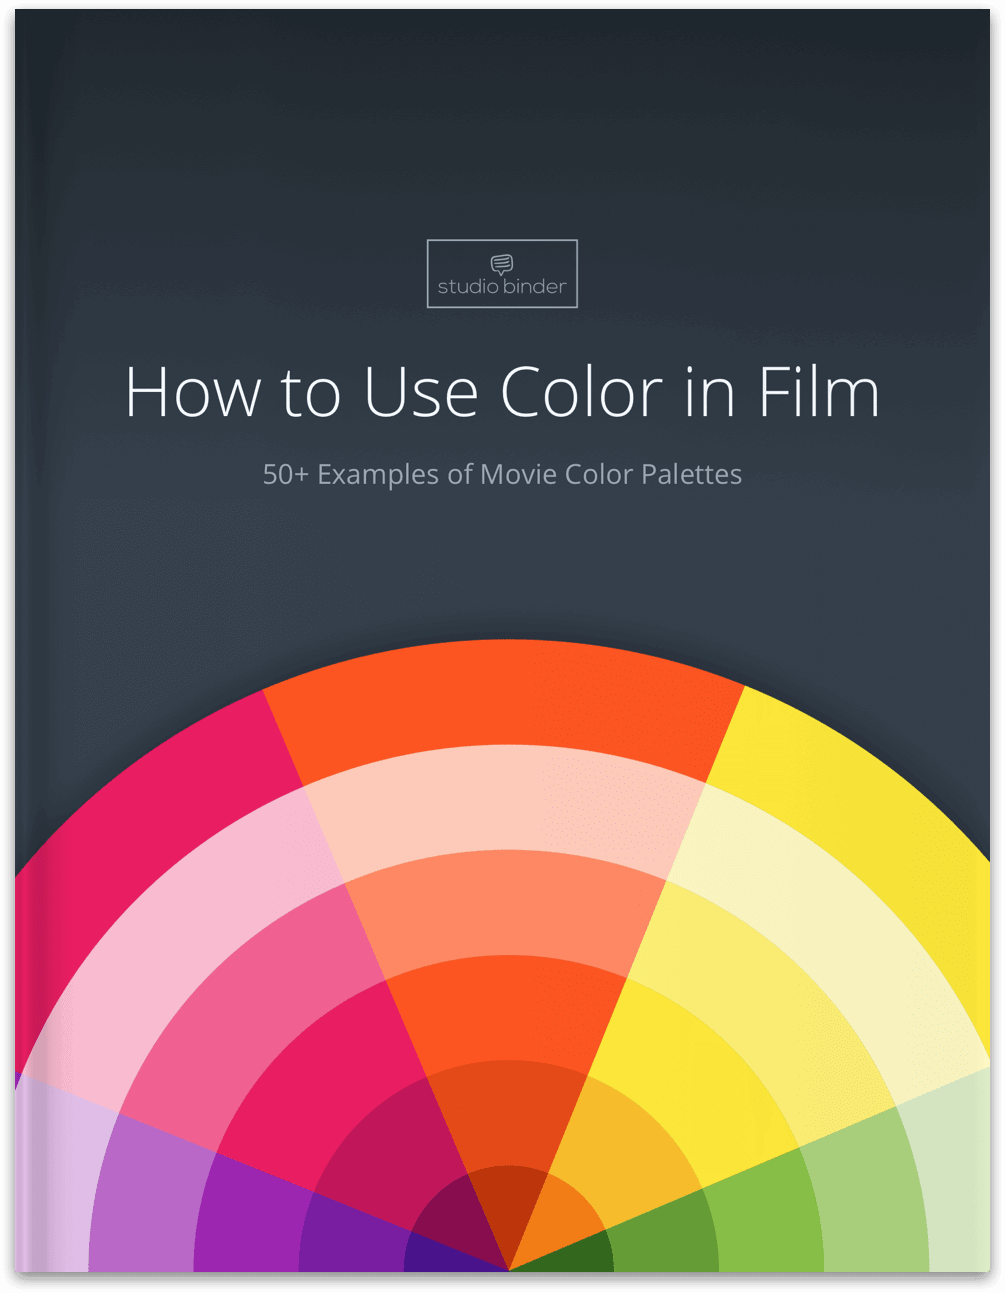 Color in Film - 50+ Examples of Movie Color Palettes (Free E-Book)